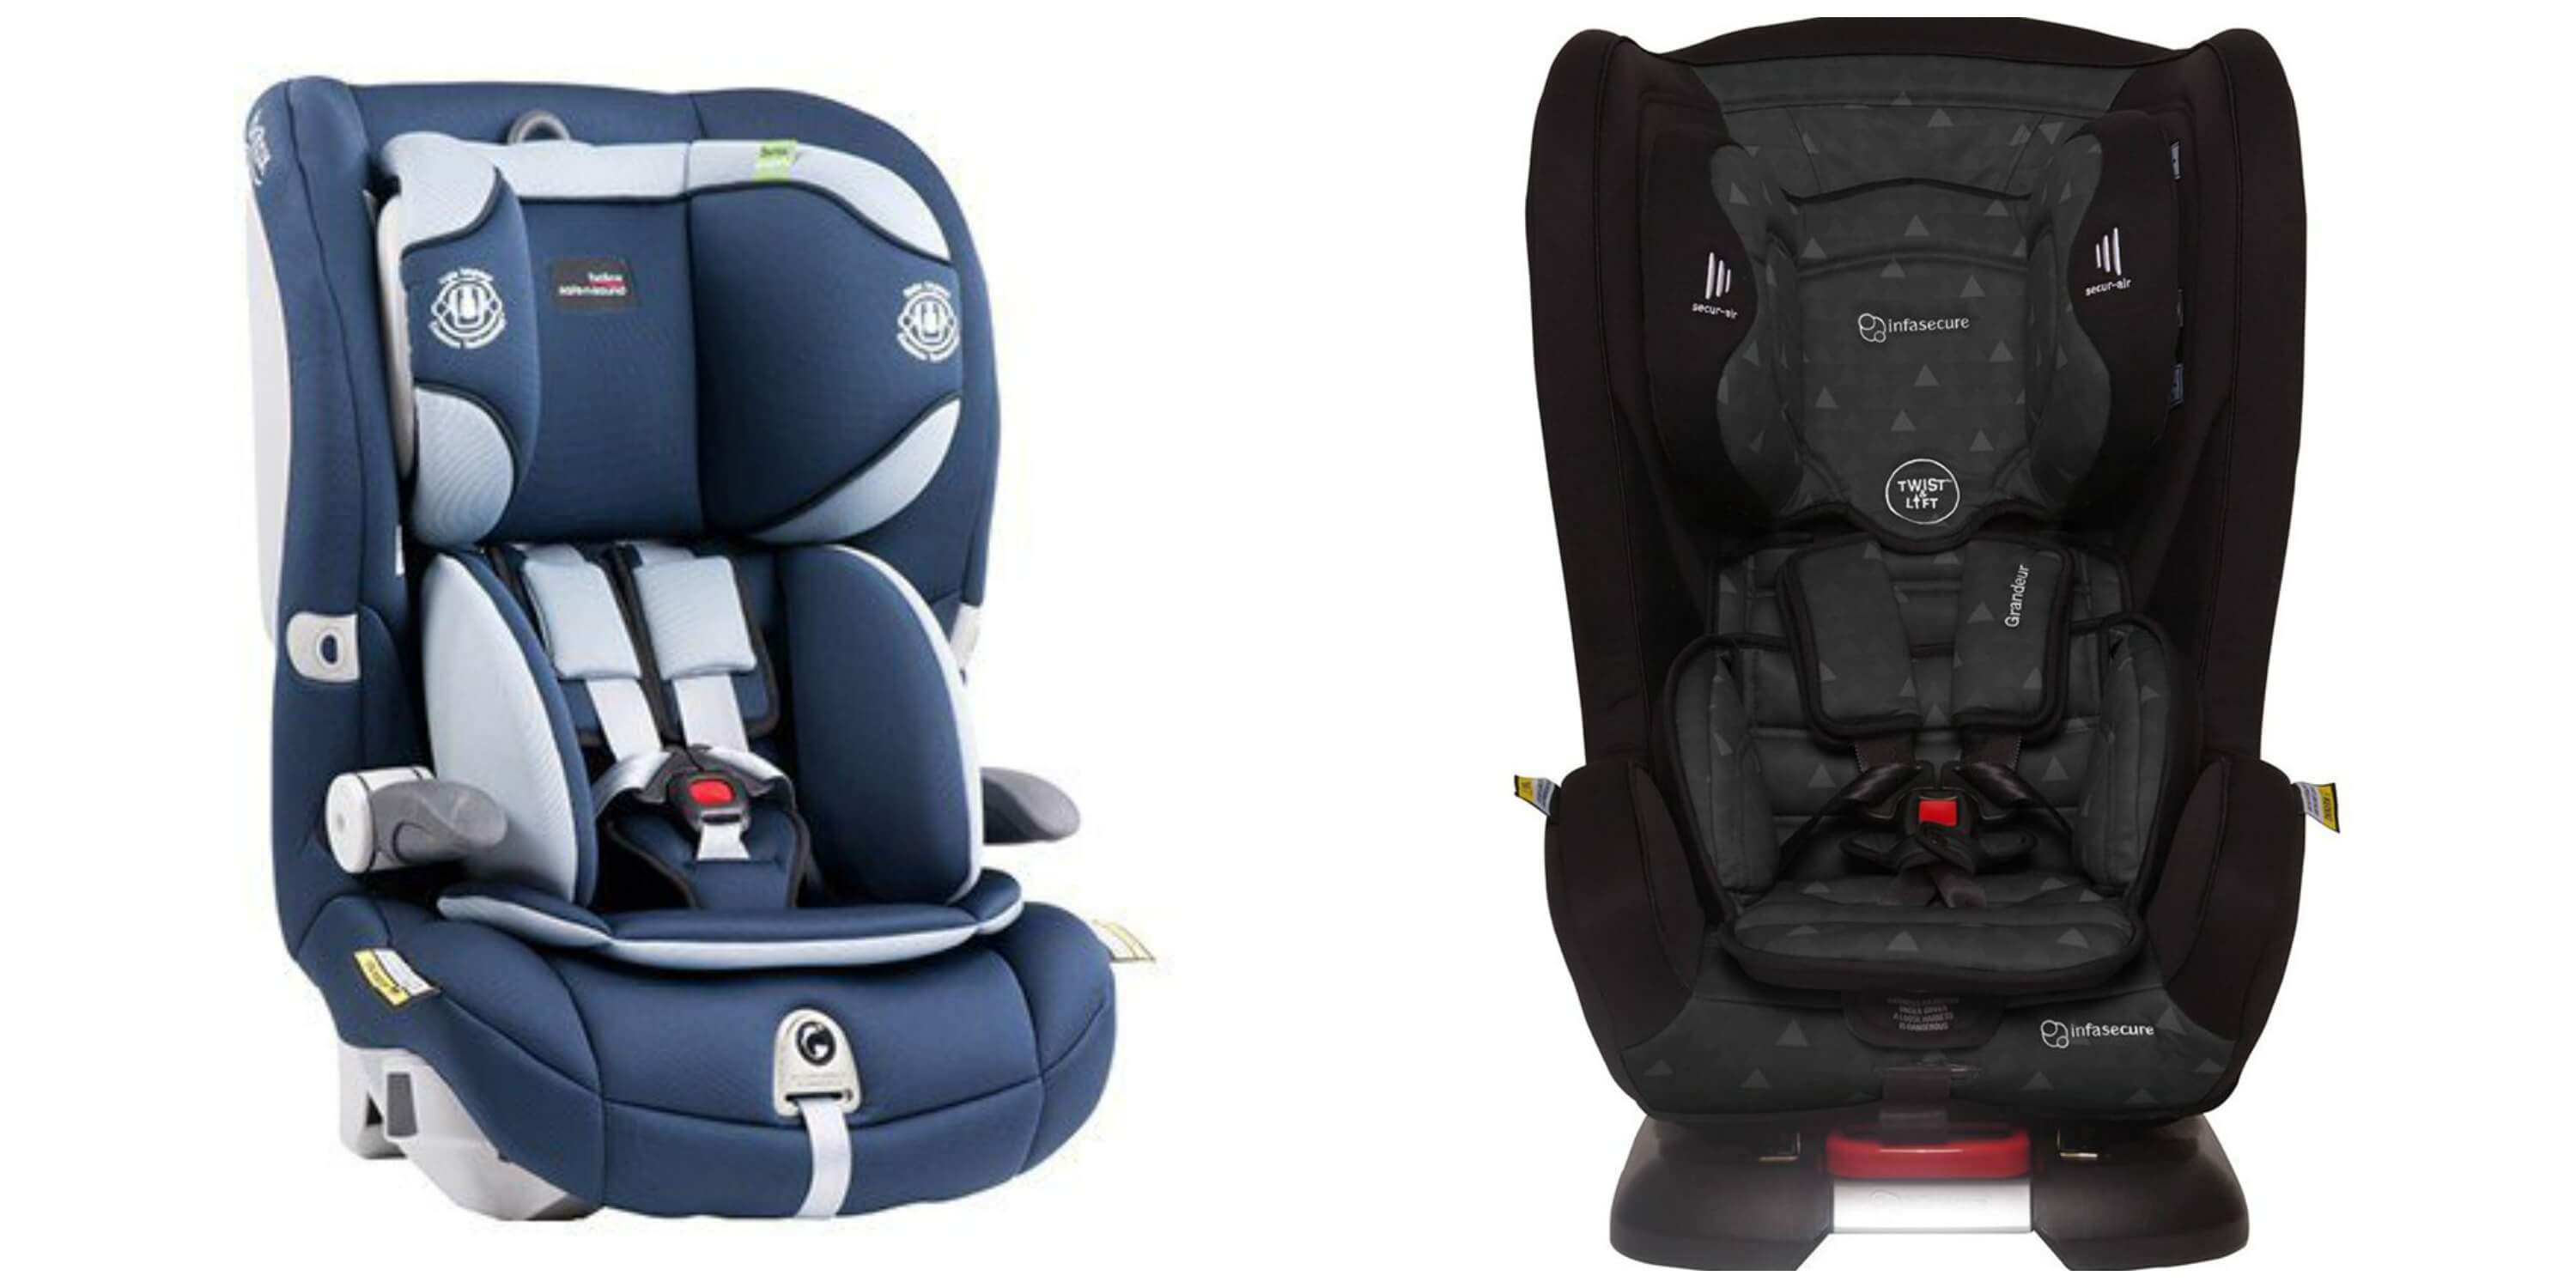 Type G car seats